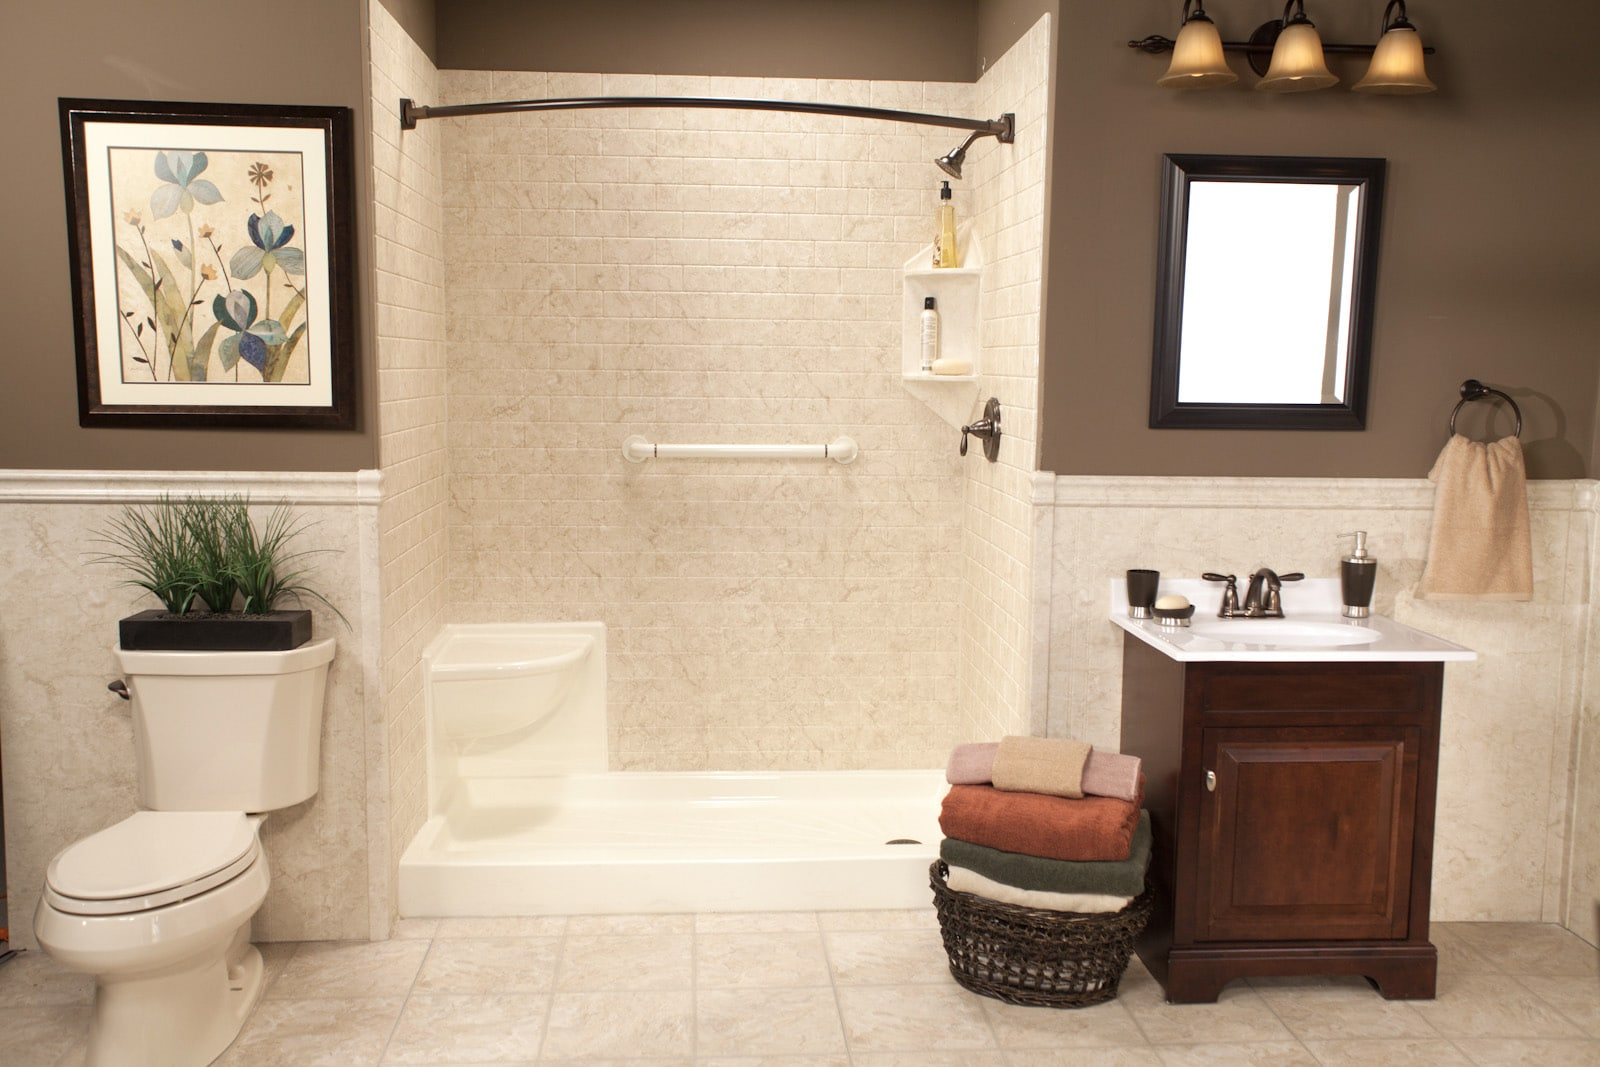 South Florida Shower Replacement - Bathrooms Plus Inc (17)